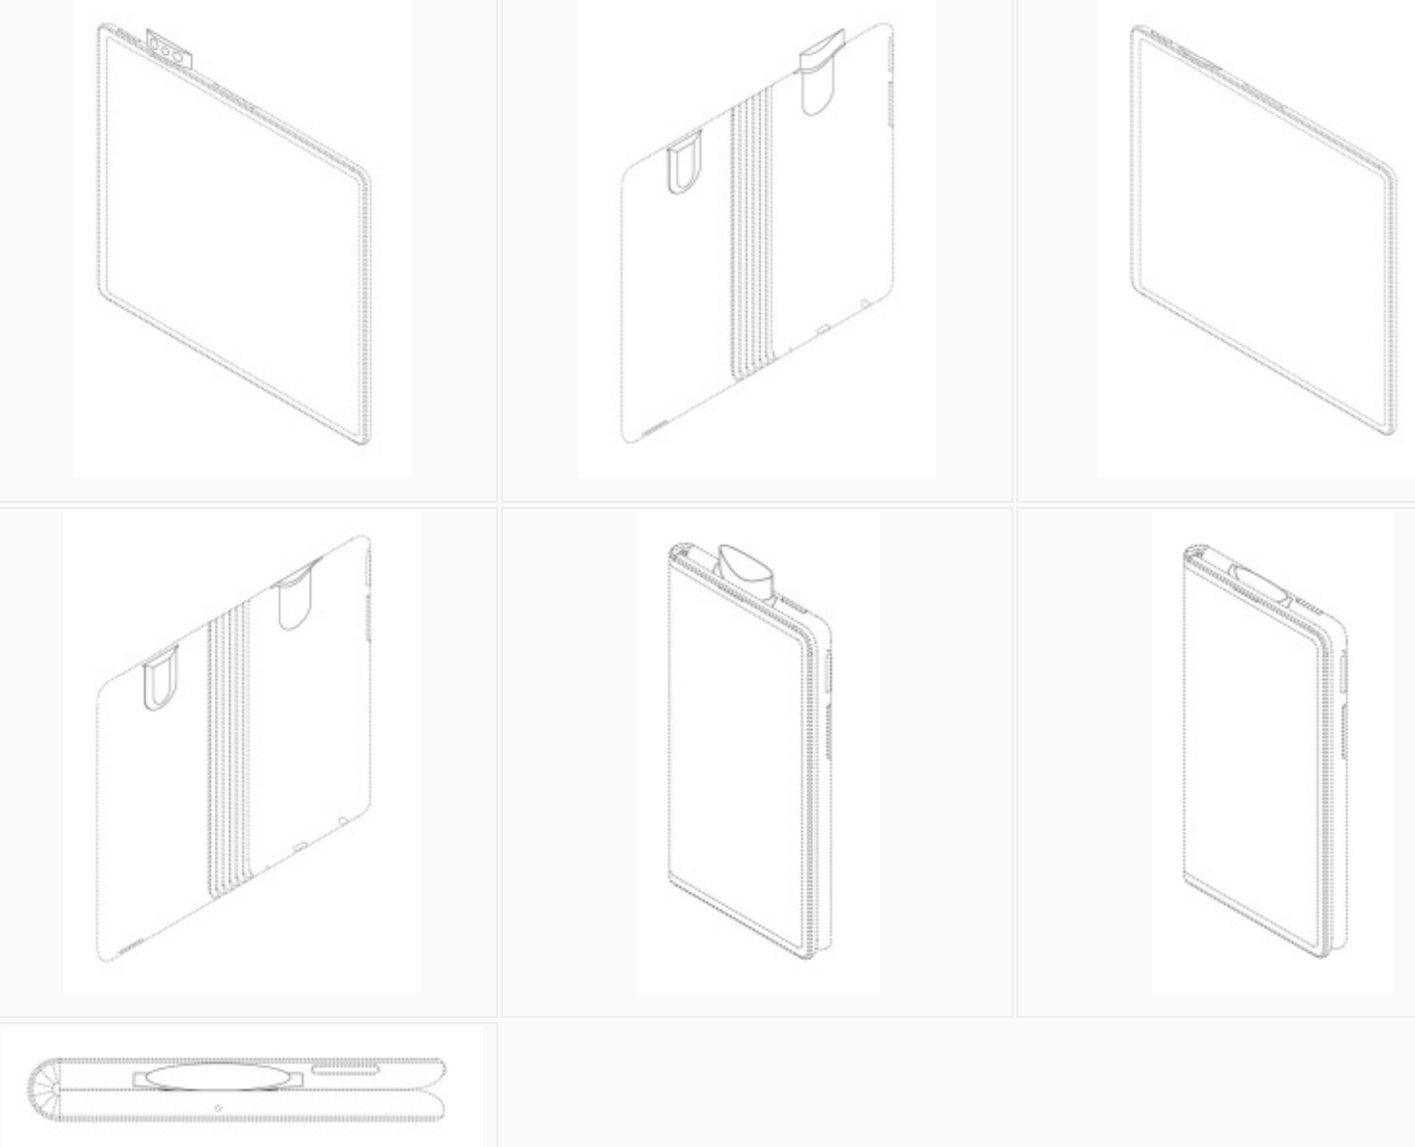 Oppo is working on its own folding phone, and it has an